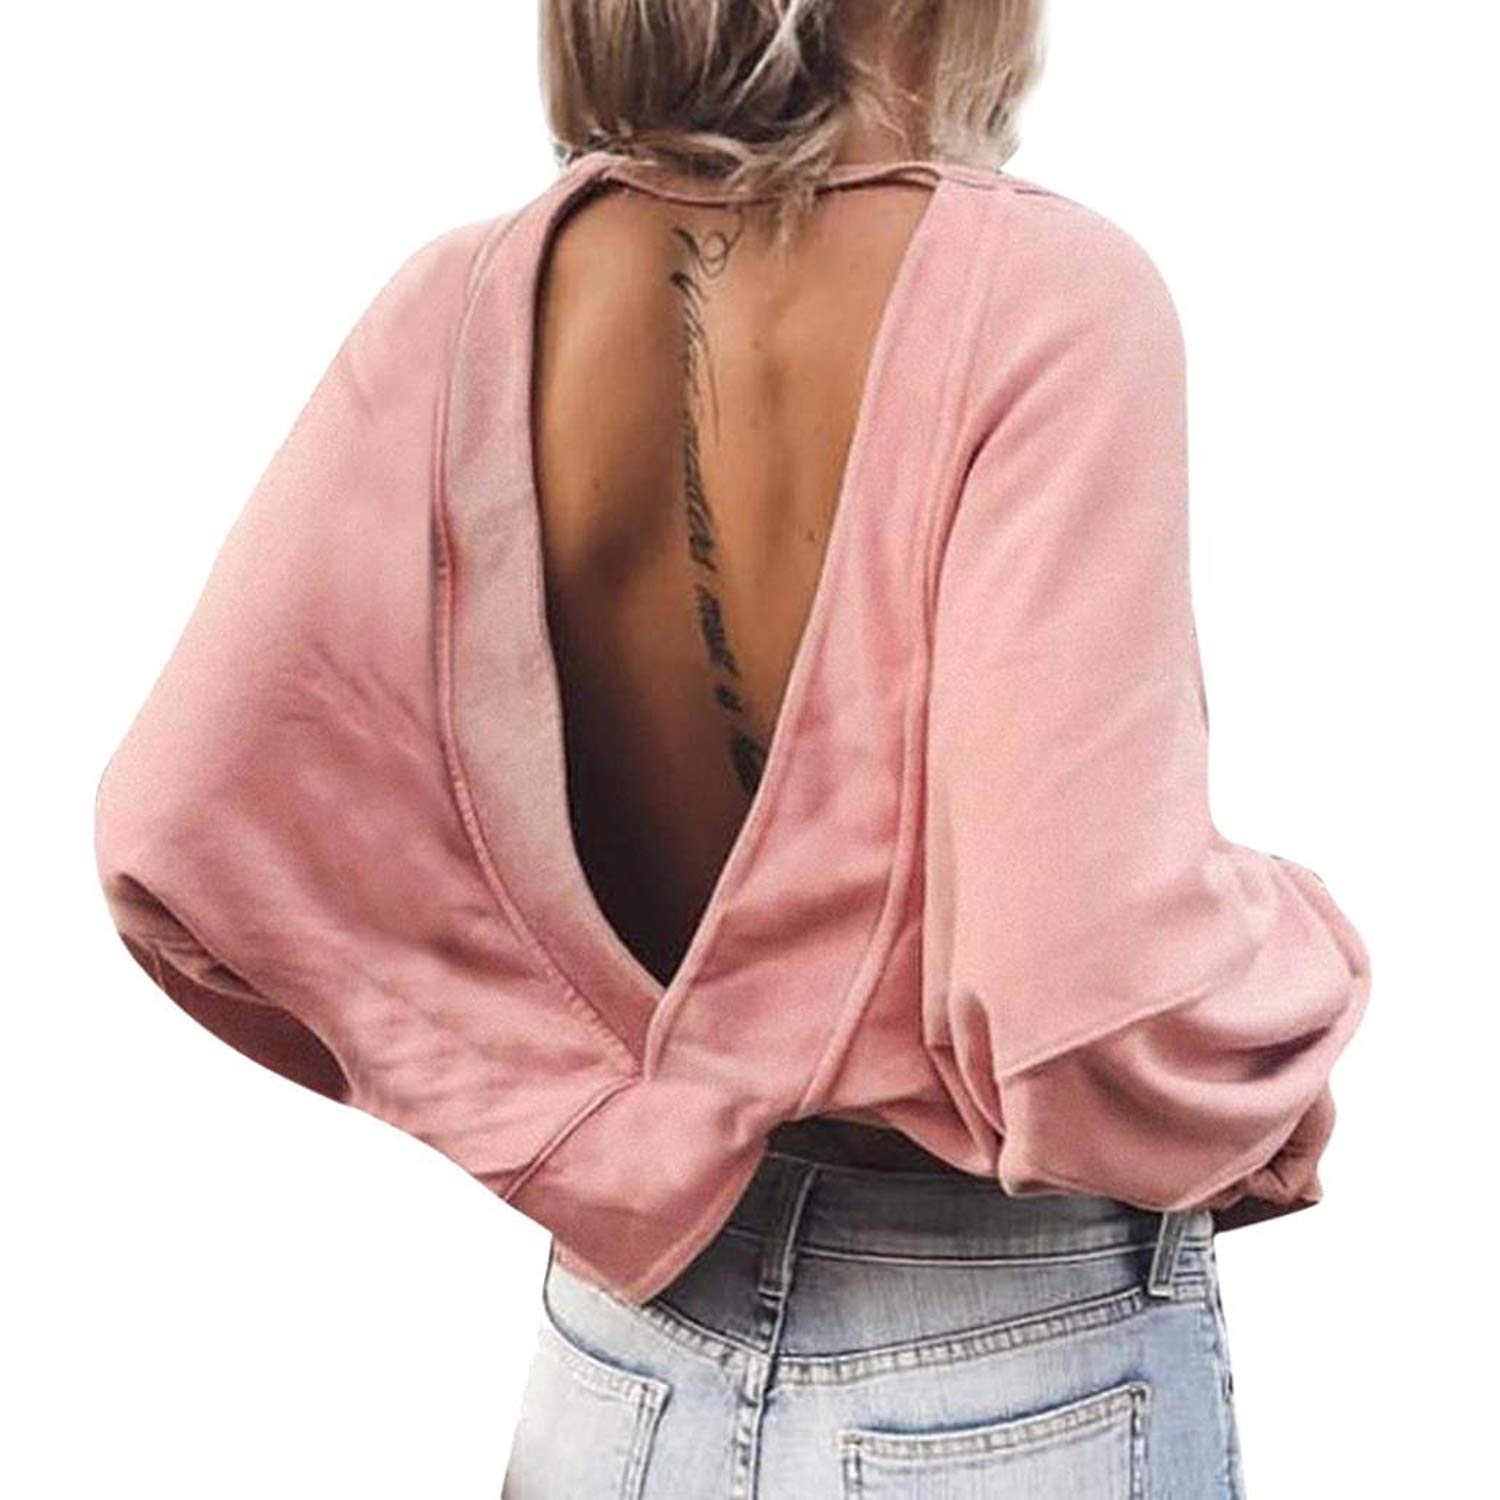 Kinrui Sexy Blouse for Women, Ladies Casual Crop Solid Long Sleeve Backless T-Shirt Blouse Sweatshirt Tops